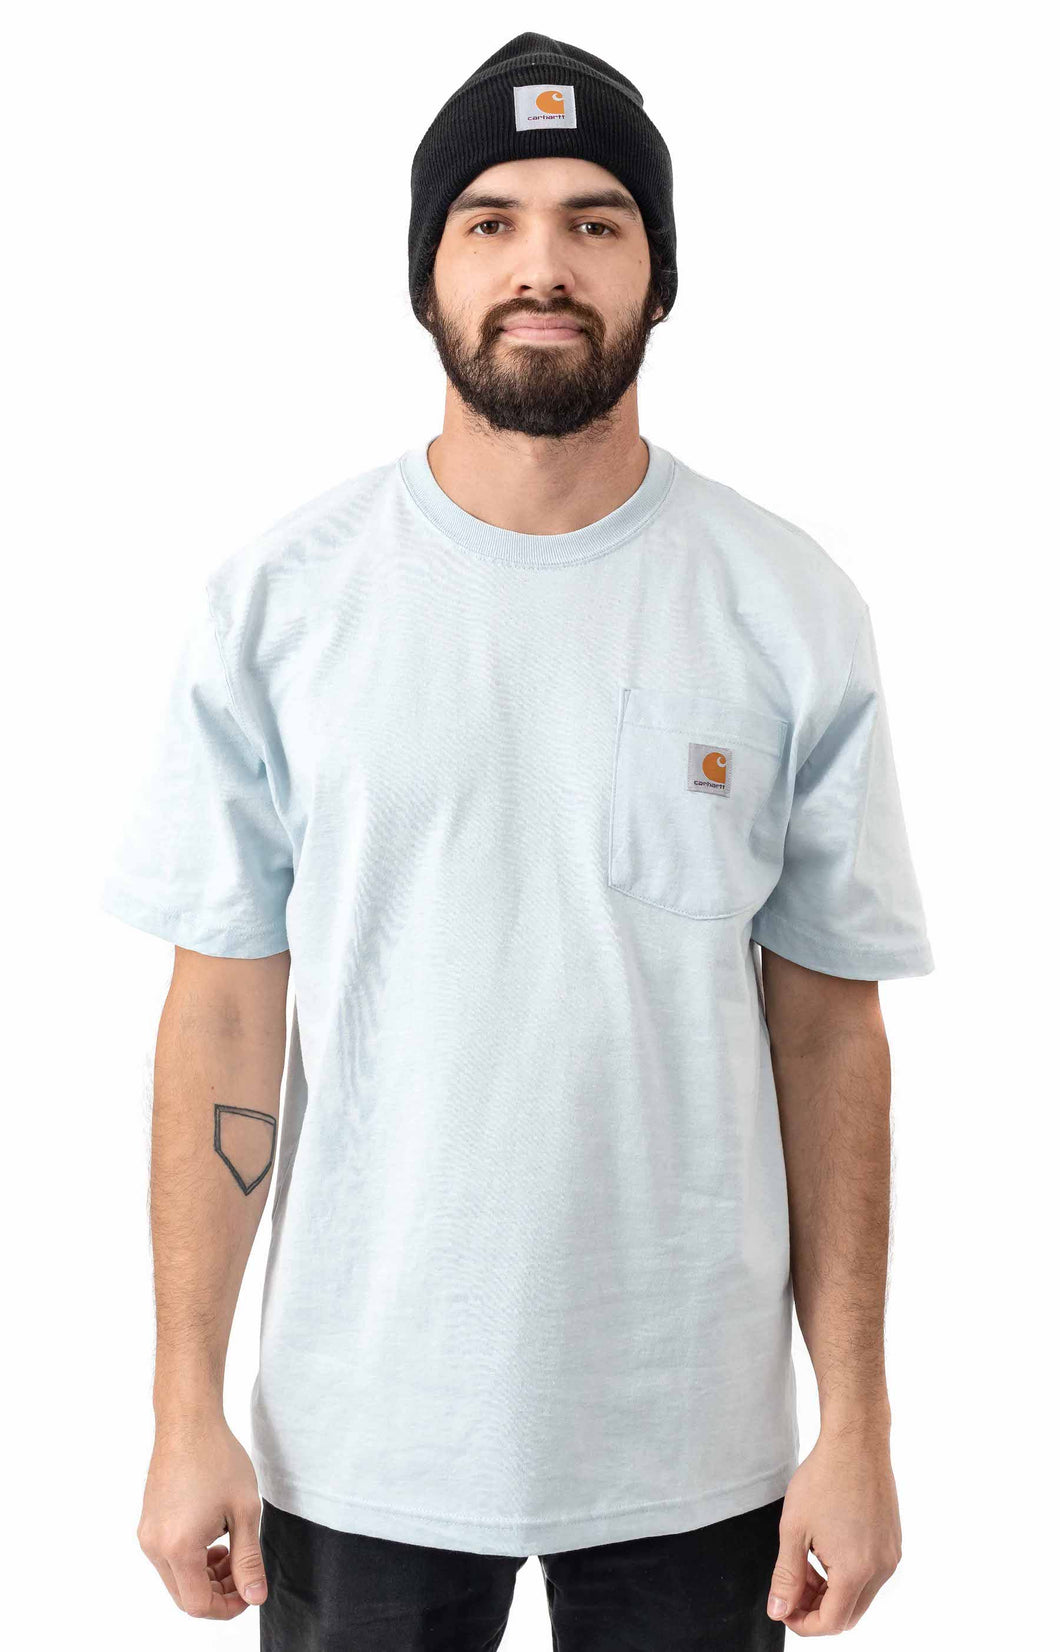 Carhartt K87 Workwear Pocket T-Shirt (Soft Blue)(Oversized fit)